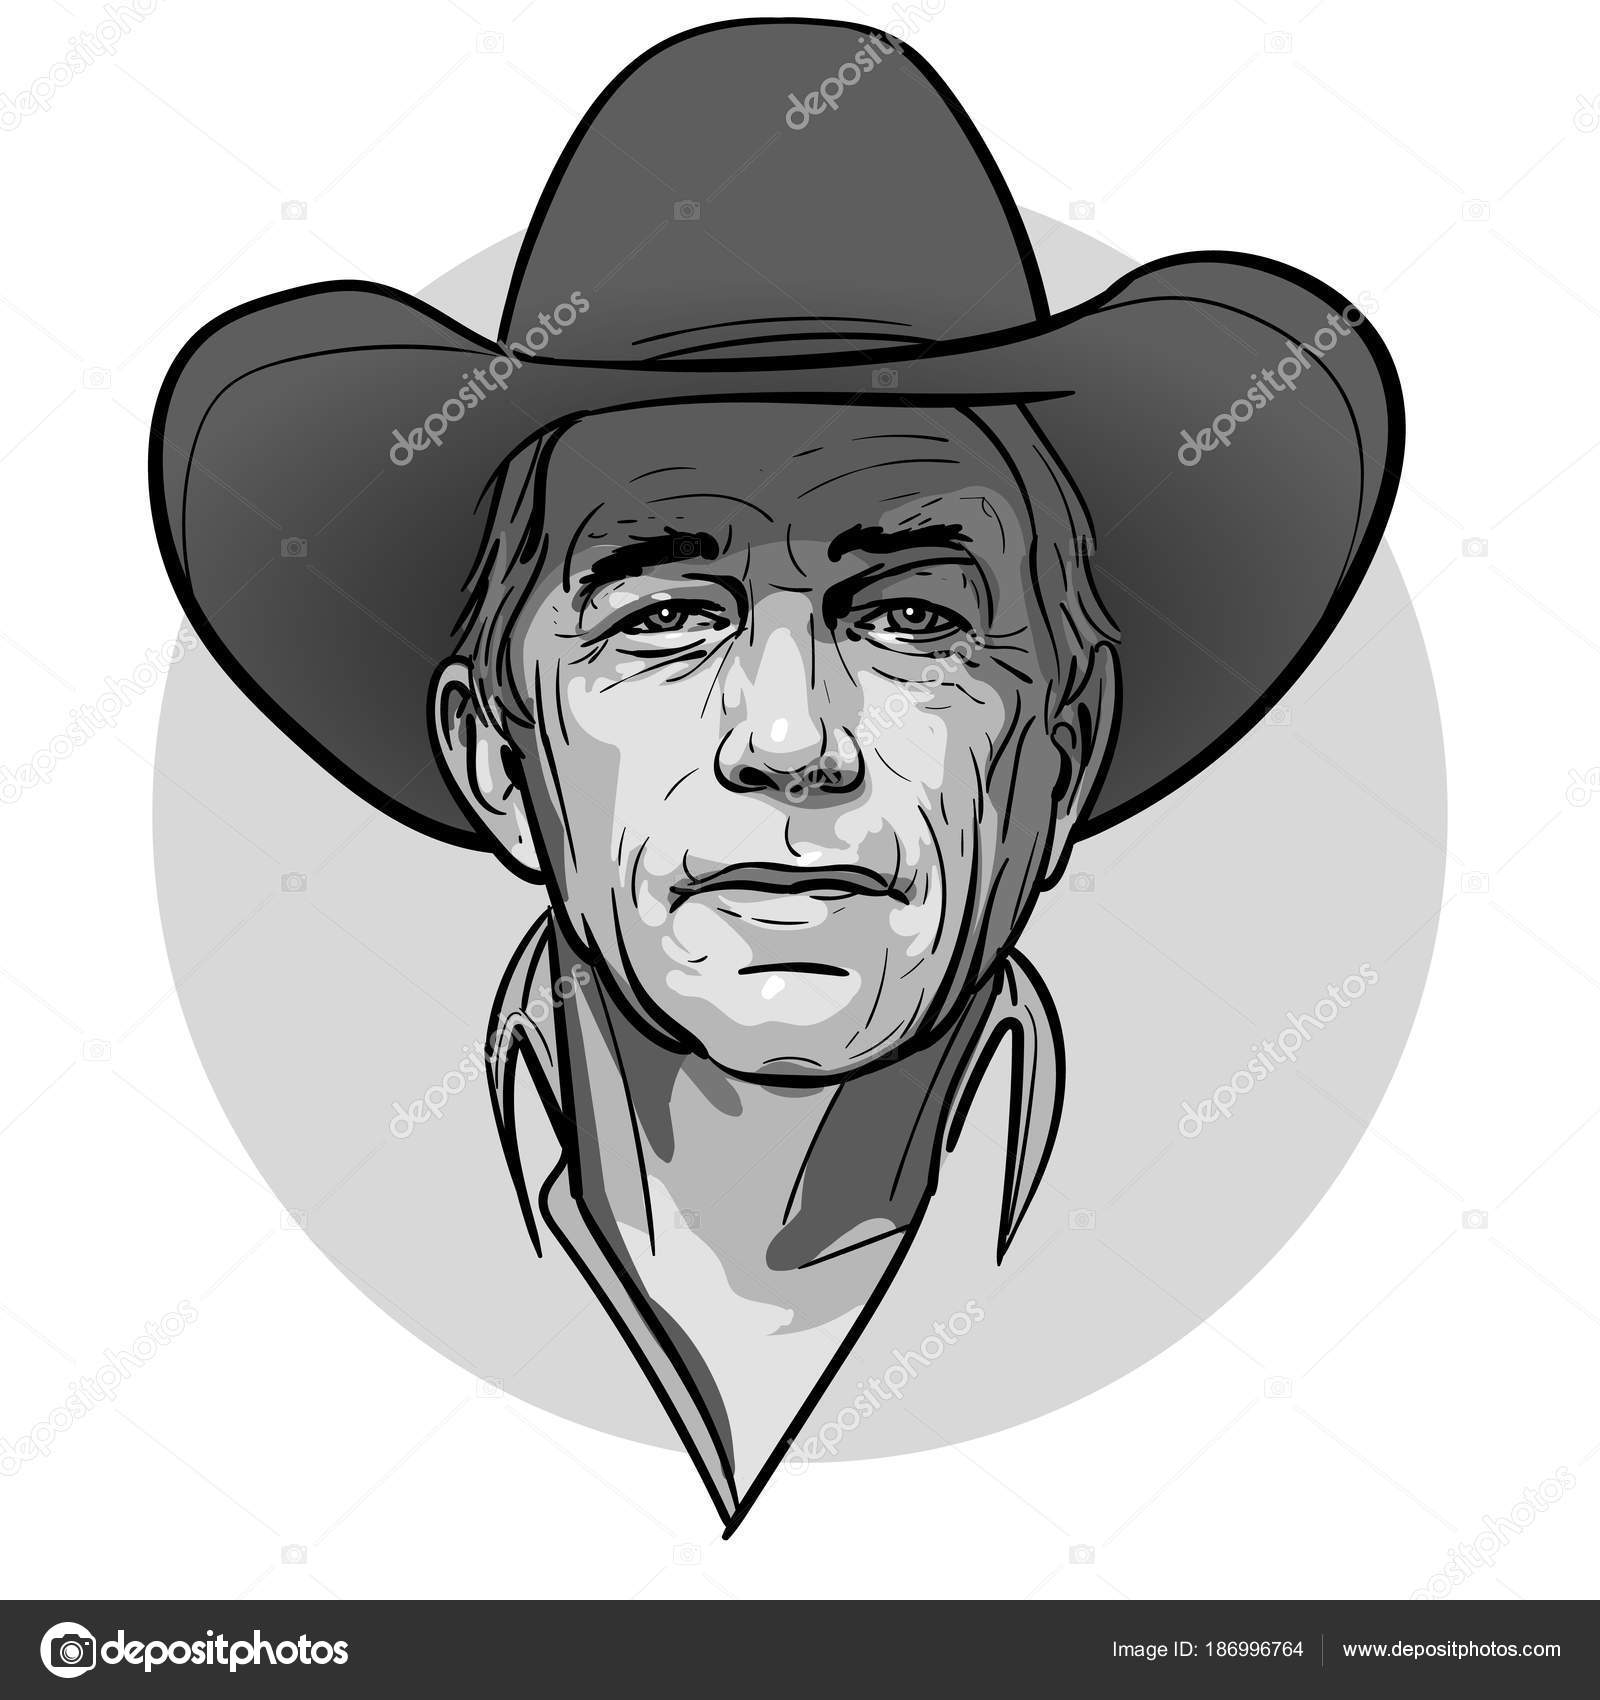 Classic Old Western Style Cowboy With Hat And Bandana Cartoon Sketch Vector Illustration By Tissen